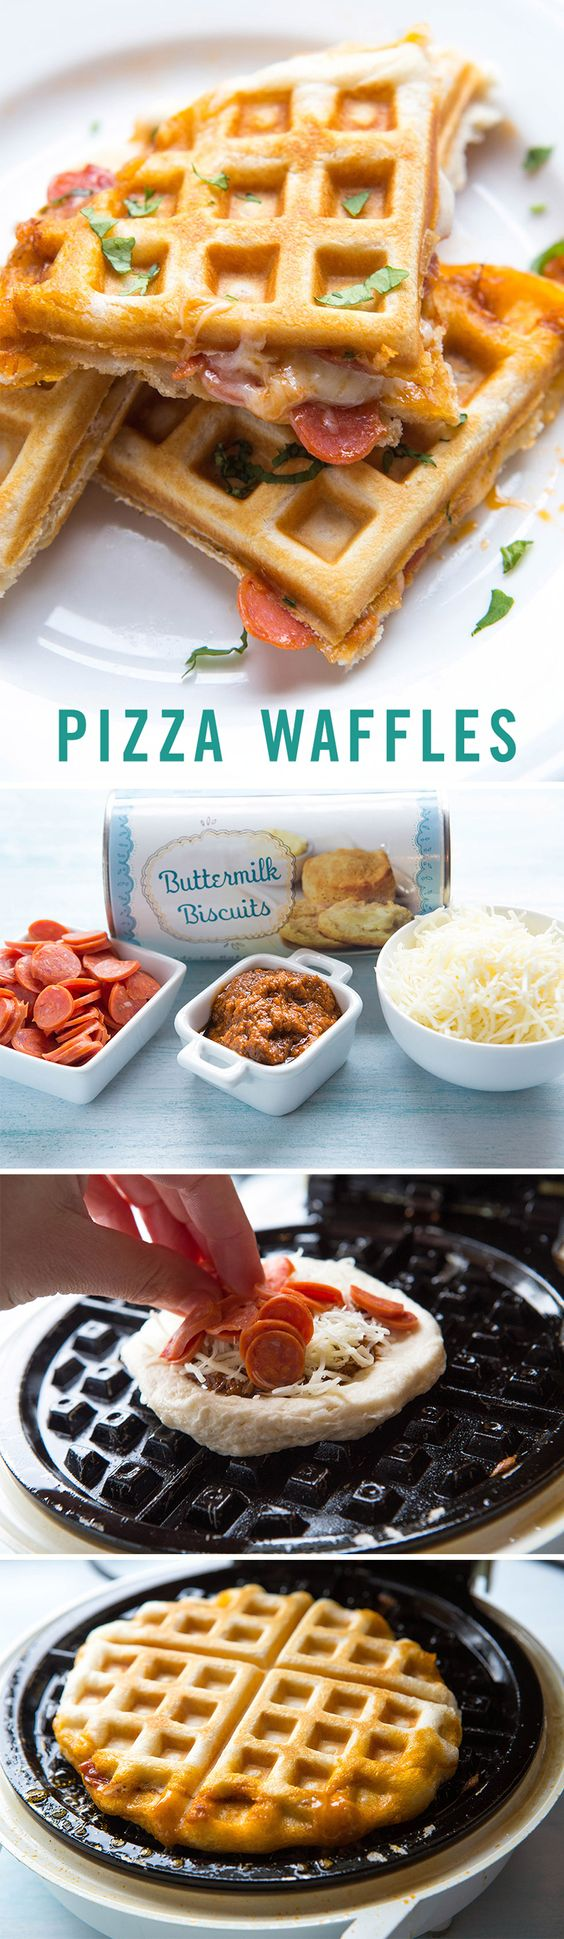 Stuffed Pizza Waffles for Two Recipe via Babble - We love pizza and we love waffles, can you imagine the magical meal we'd have if we combined the two? Follow this tasty homemade recipe for stuffed pizza waffles and indulge for tonight's dinner.